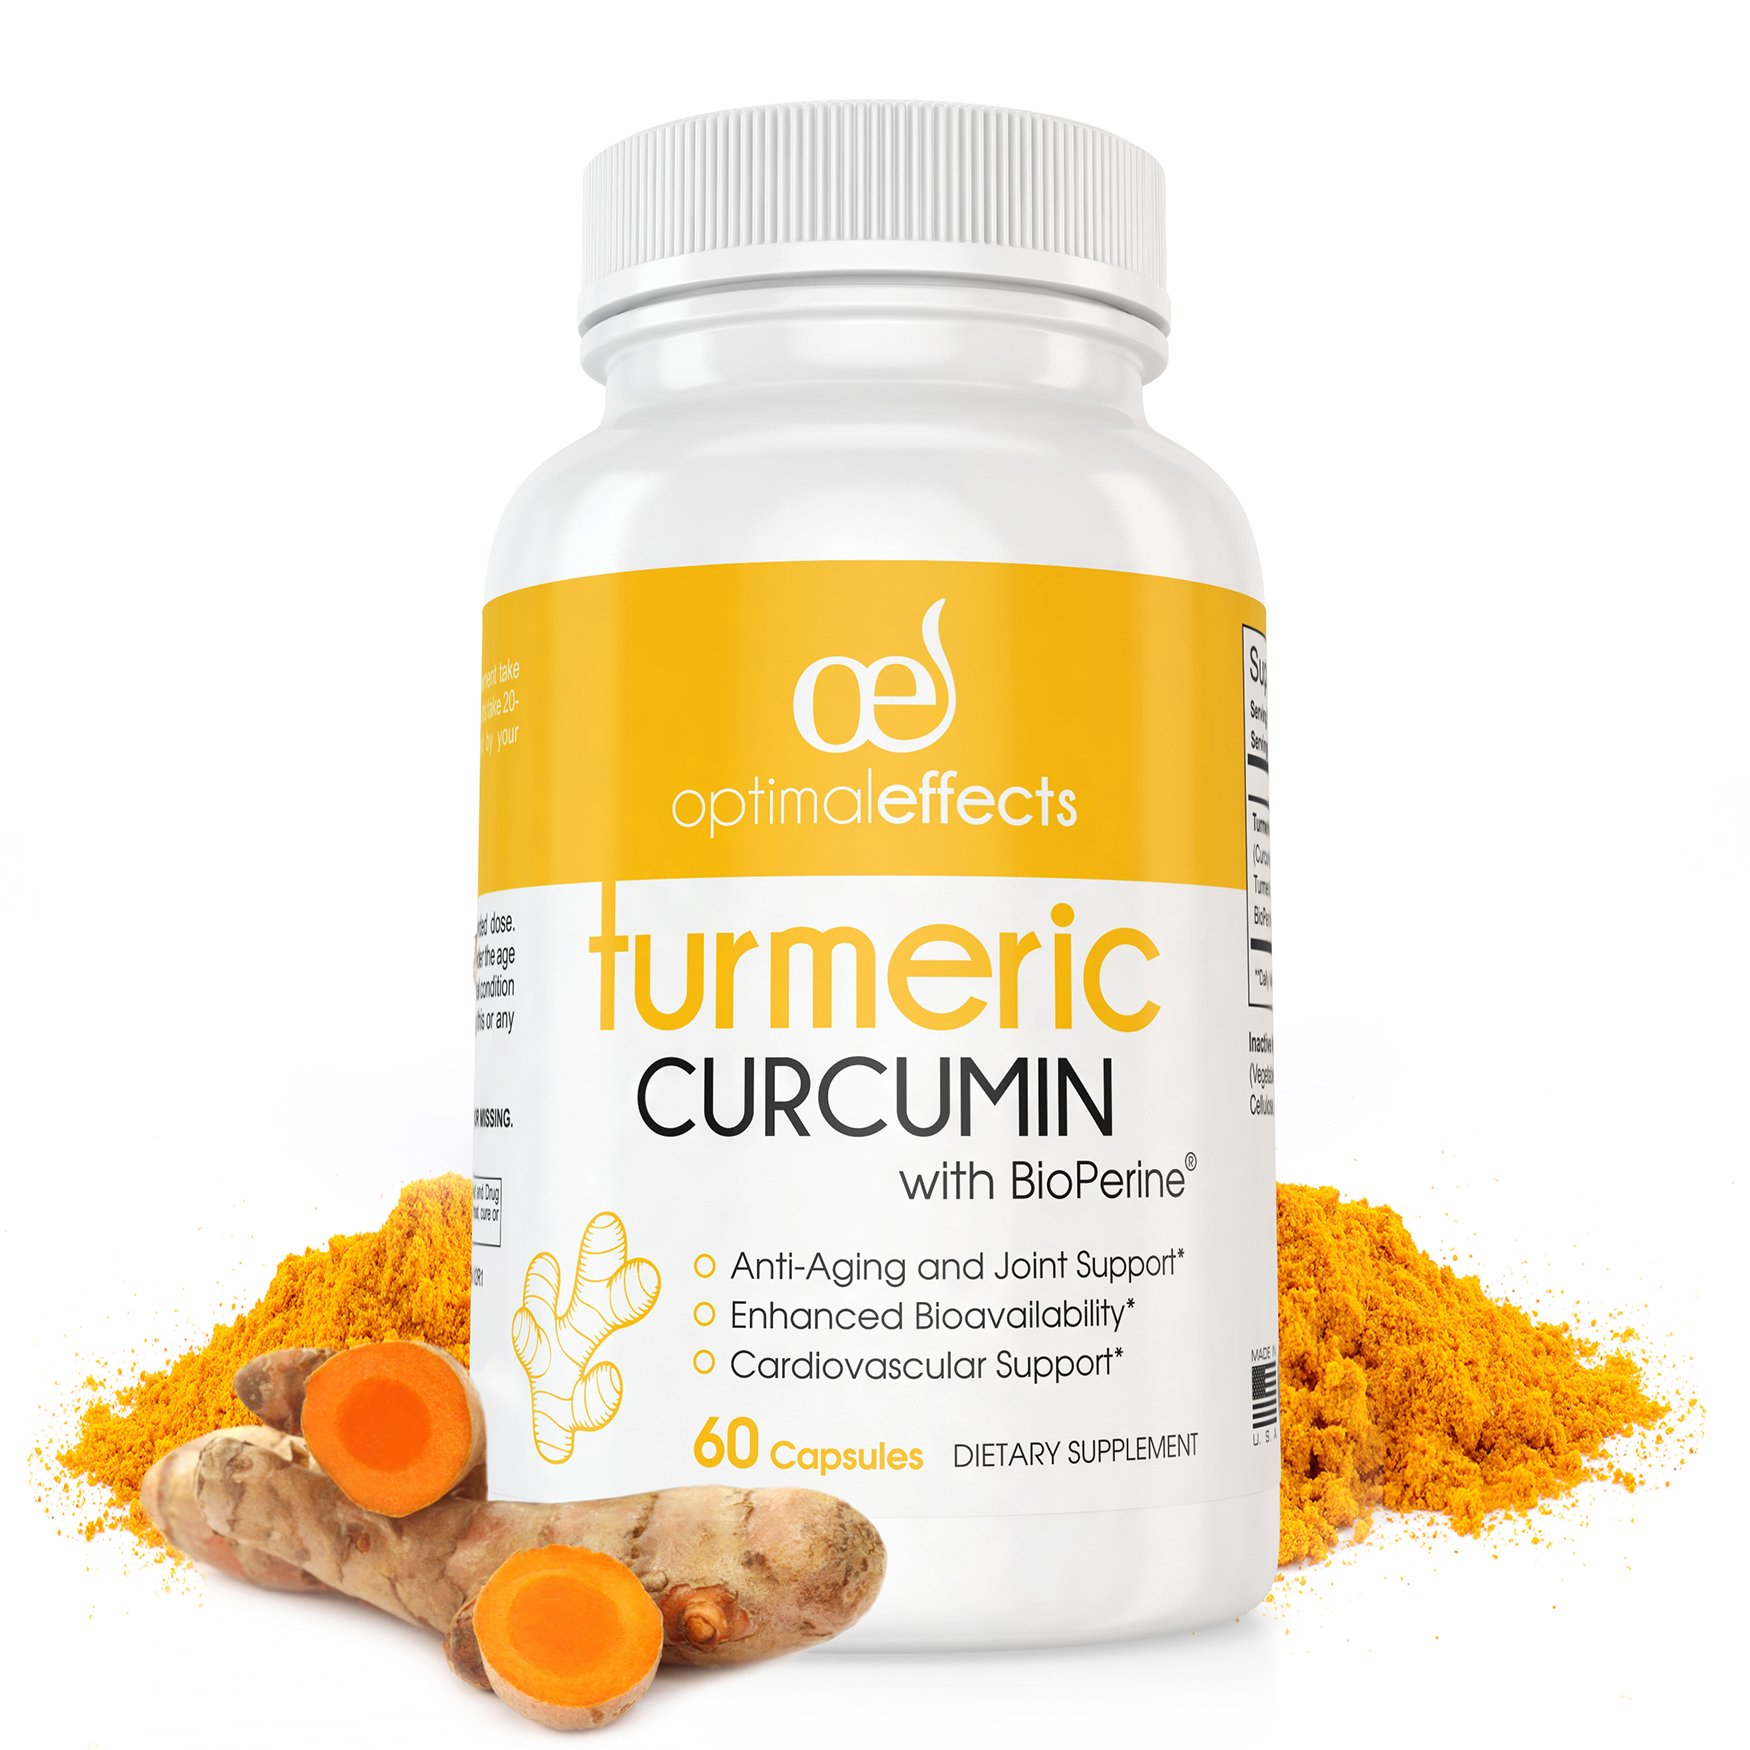 Turmeric Curcumin with Bioperine by Optimal Effects - Natural Black Pepper Antioxidant for Joint and Mobility Support - 95% Curcuminoids - 60 Veggie Capsules